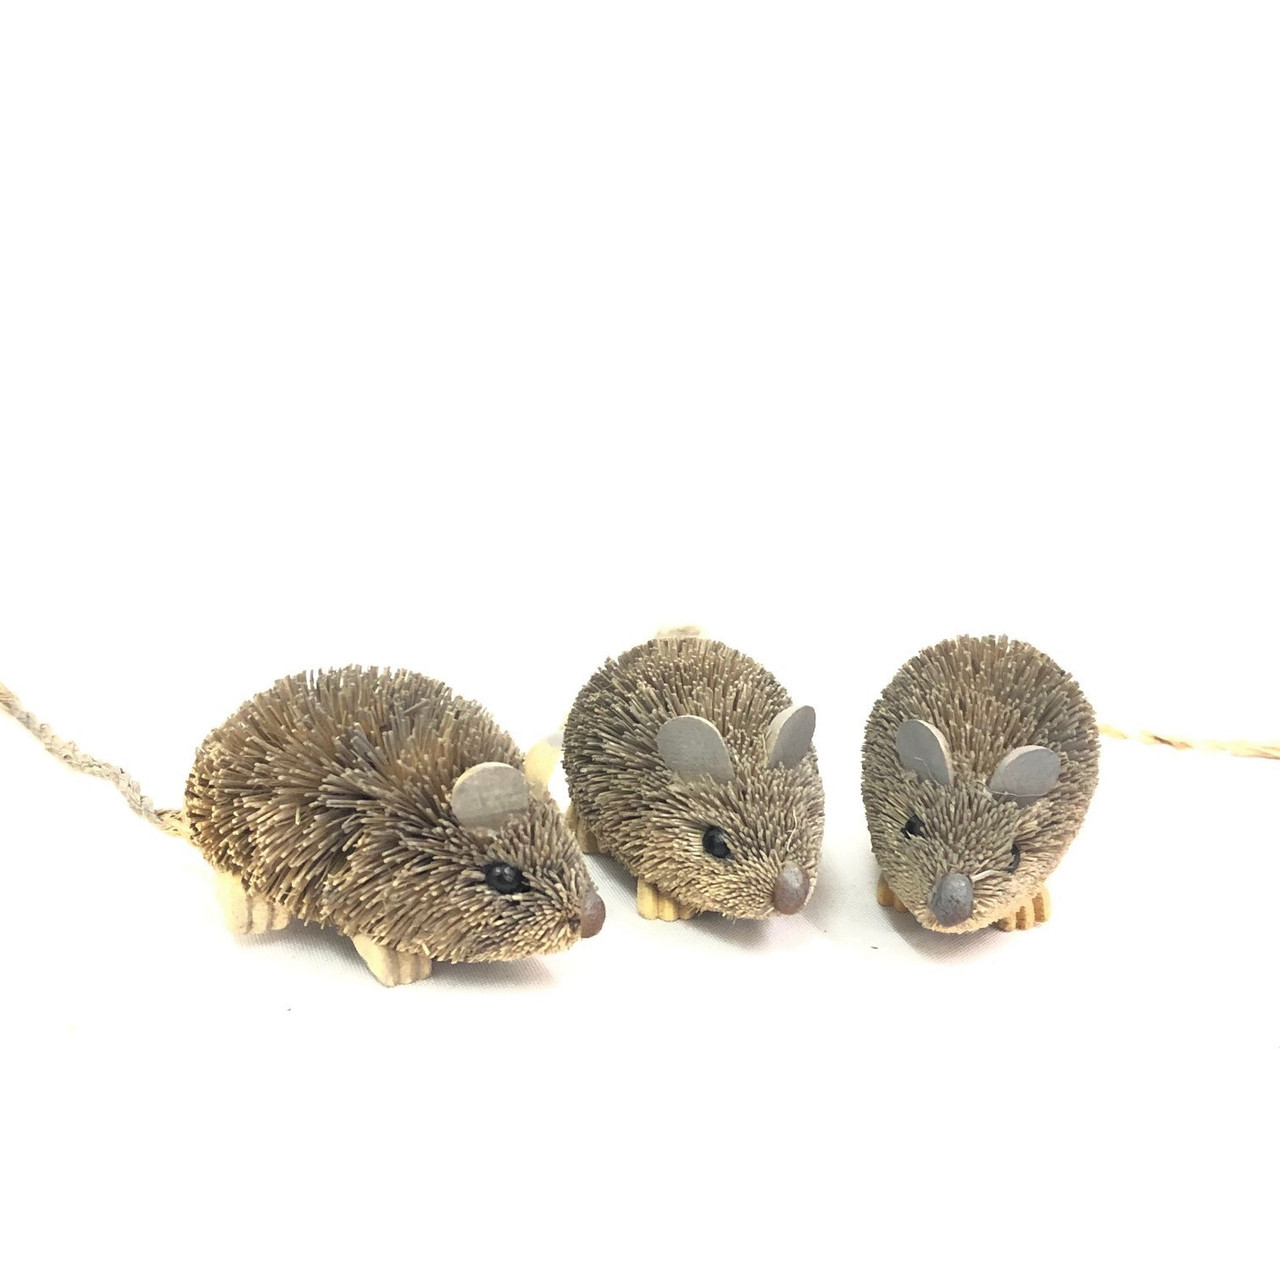 Field Mouse - Set of 3